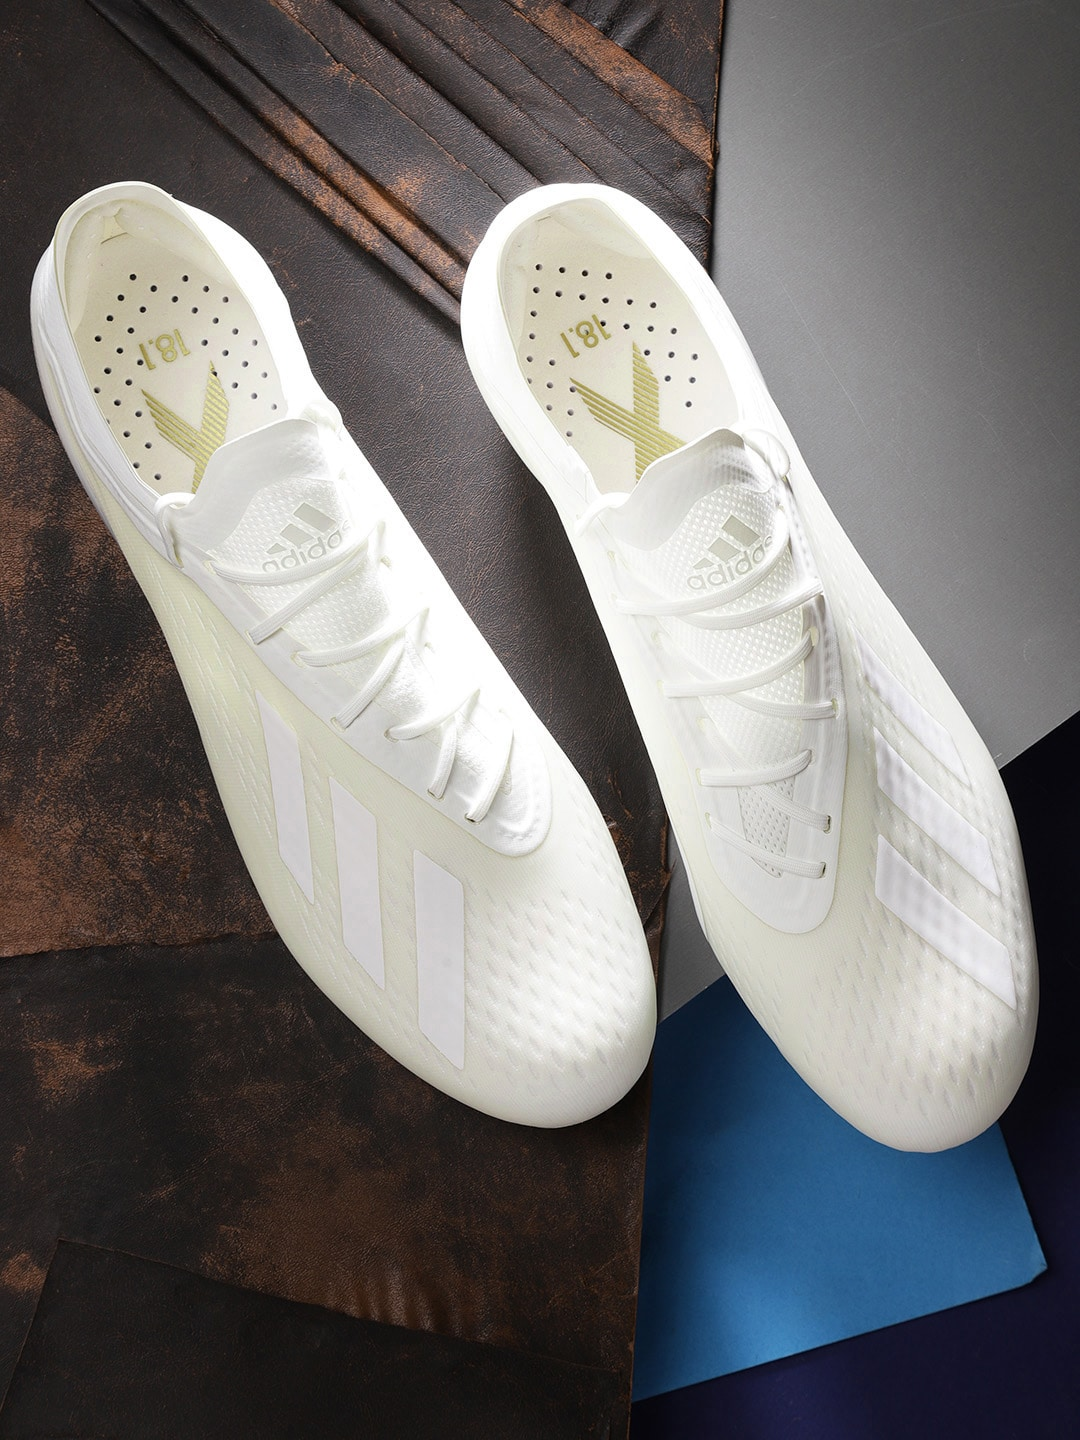 premium selection c1905 02fcd White Sports Shoes - Buy White Sports, Running Shoes Online in India